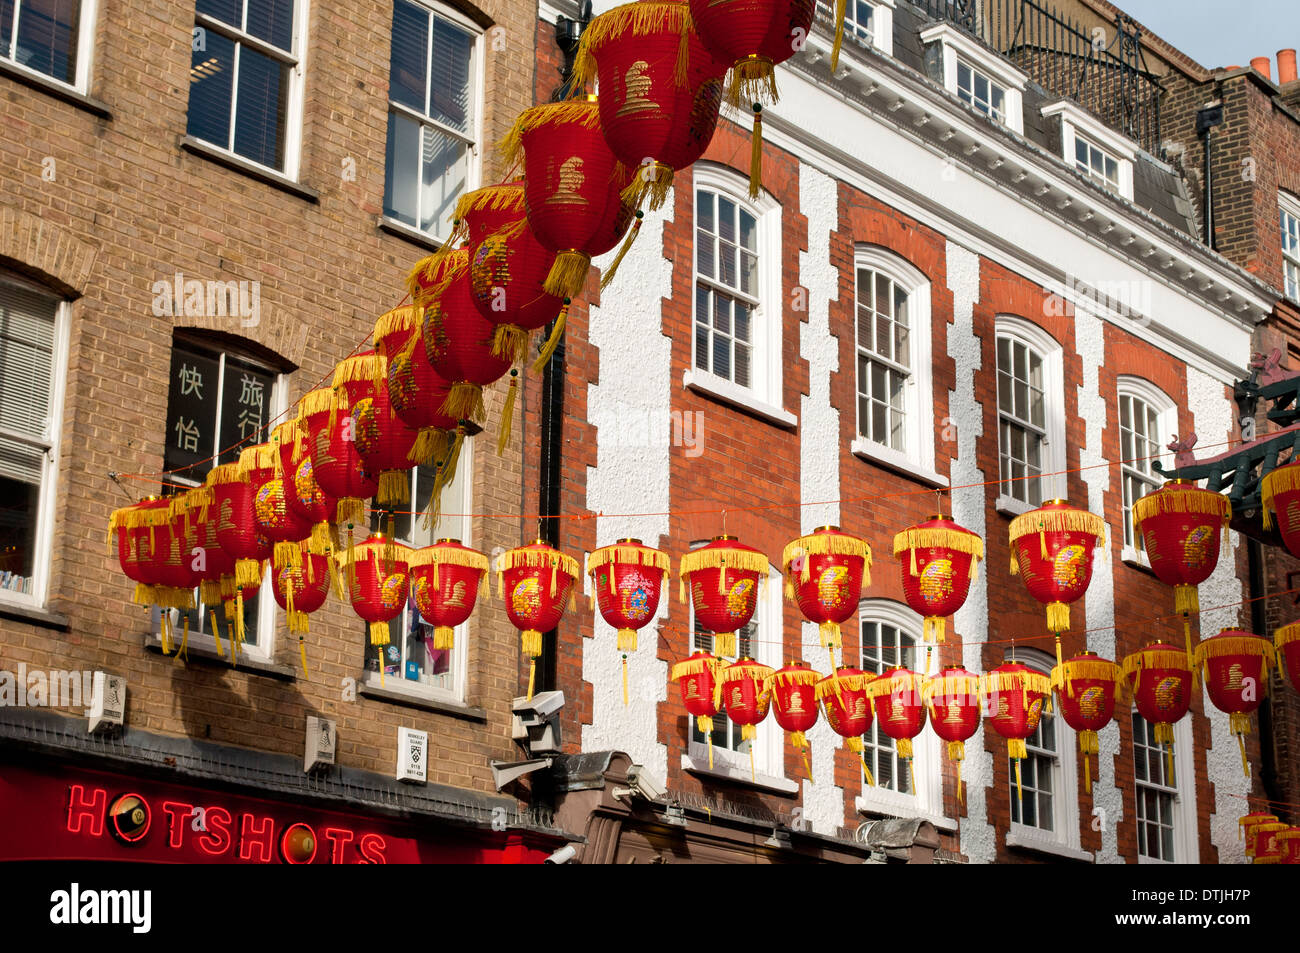 Chinese New Year decorations in Gerrard Street, Chinatown, Soho, London, WC2, UK - Stock Image